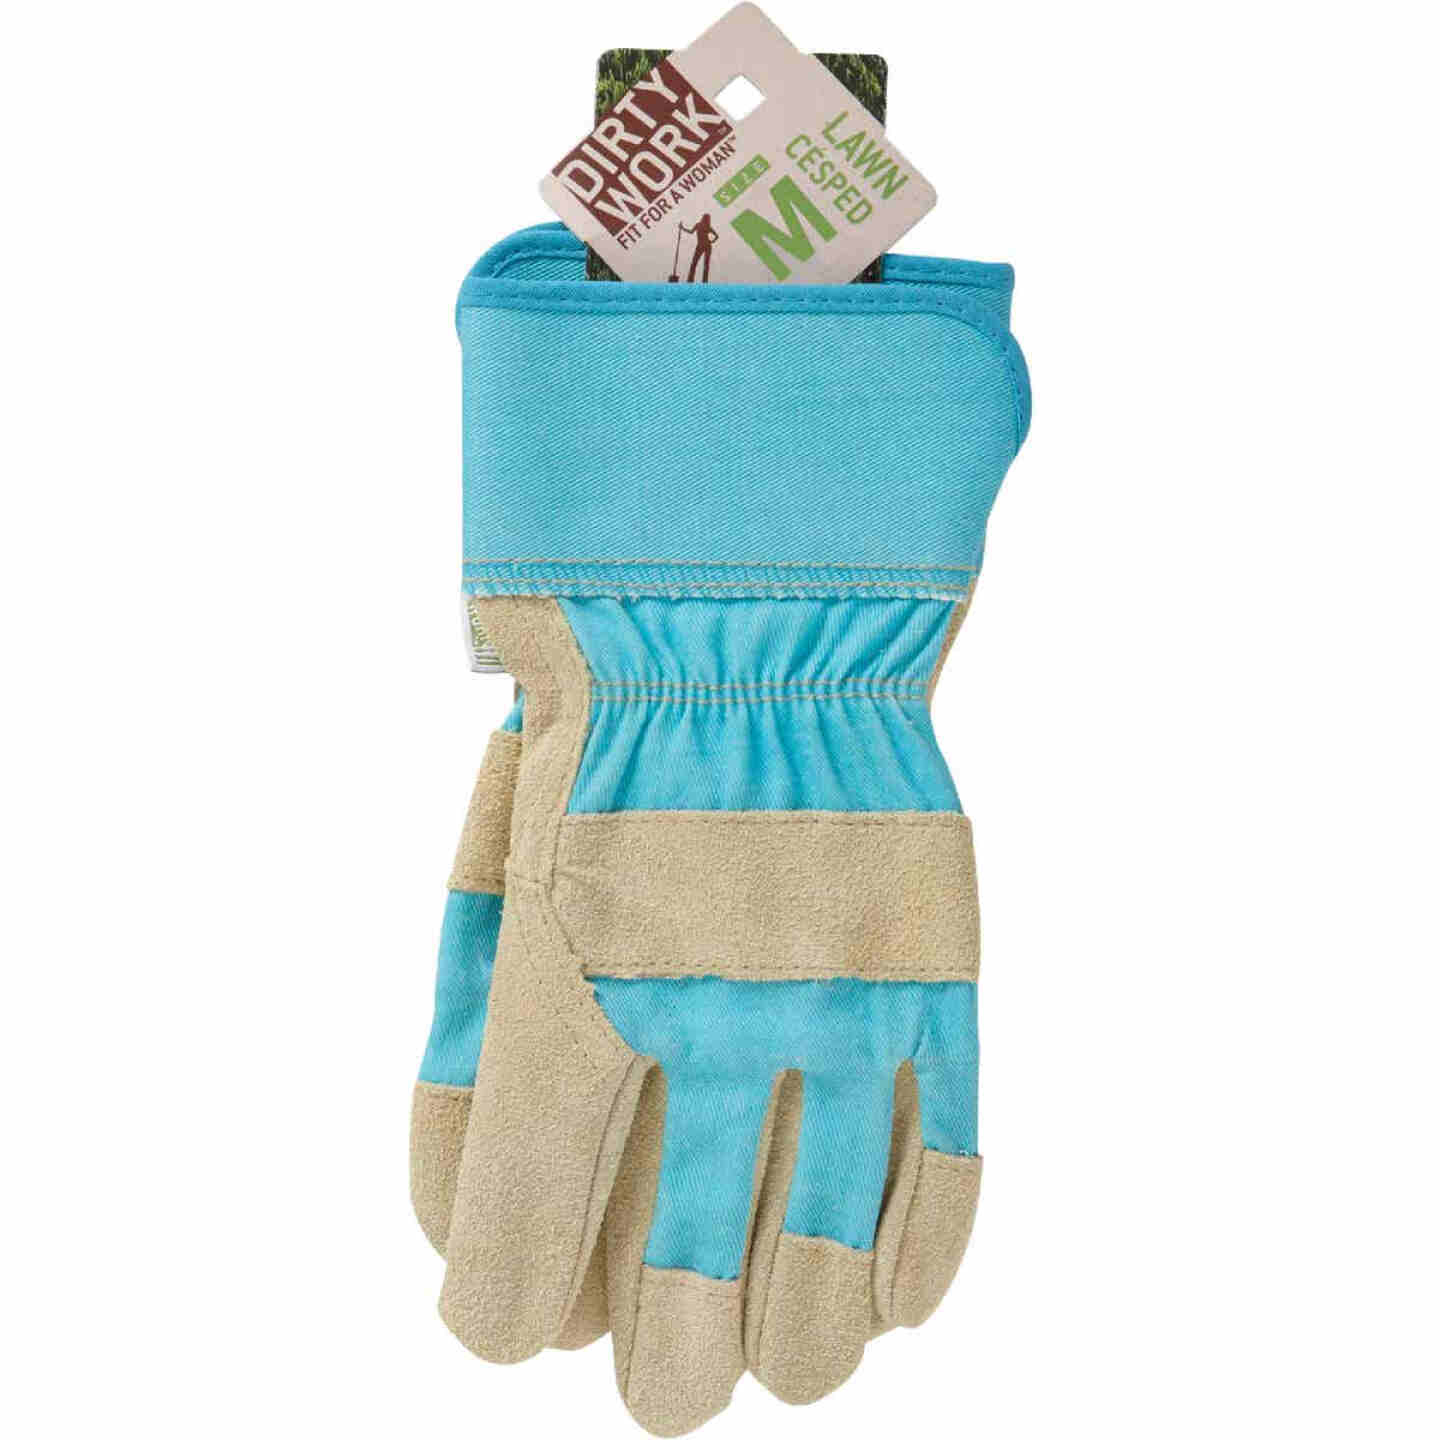 West Chester Protective Gear Dirty Work Women's Medium Leather Work Glove Image 2